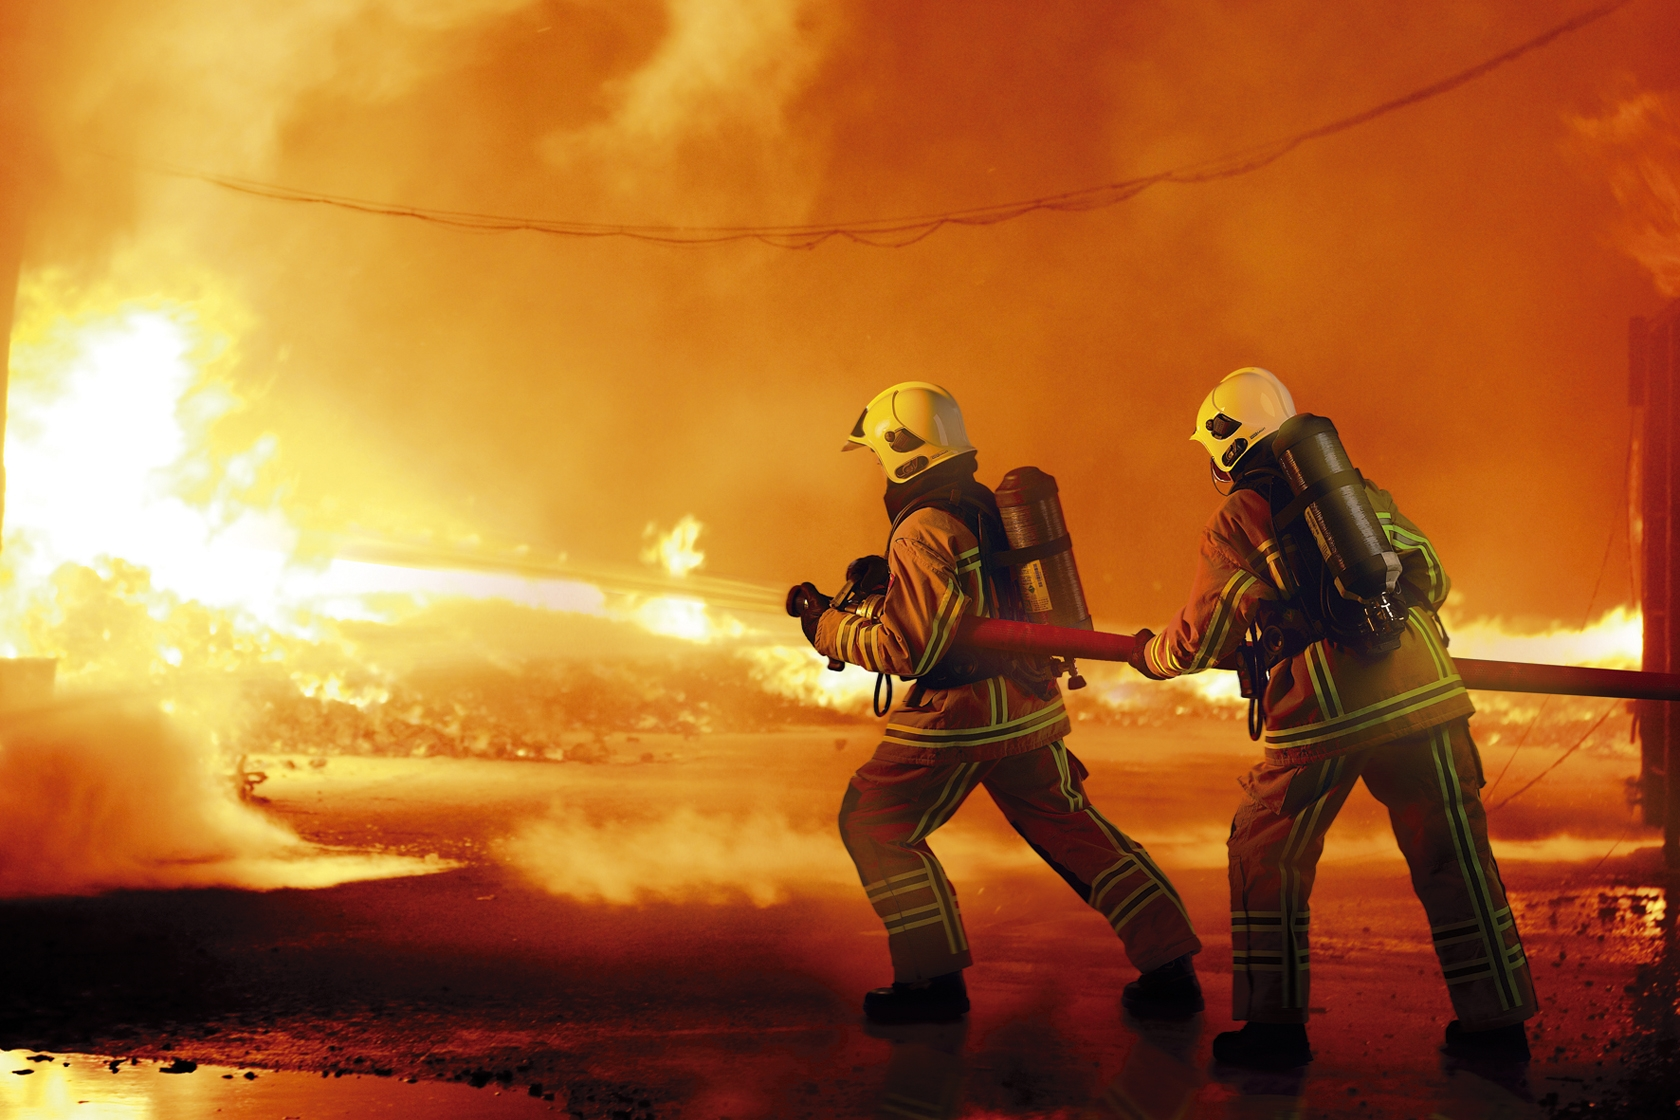 Firefighter HD wallpapers, Desktop wallpaper - most viewed